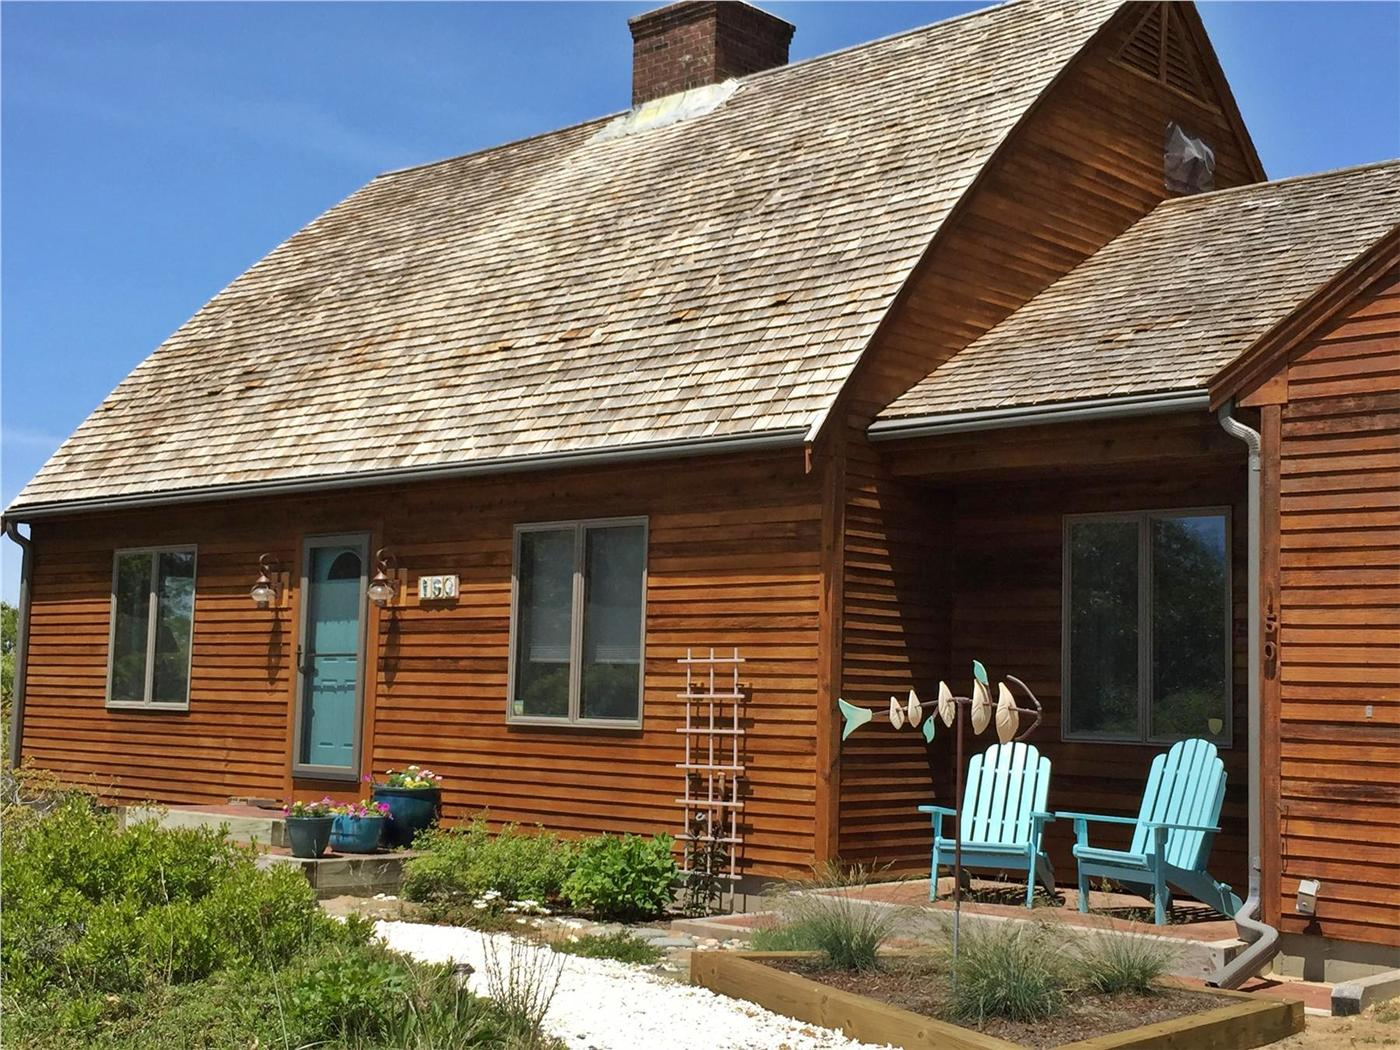 Eastham Vacation Rental Home In Cape Cod Ma 02642 500